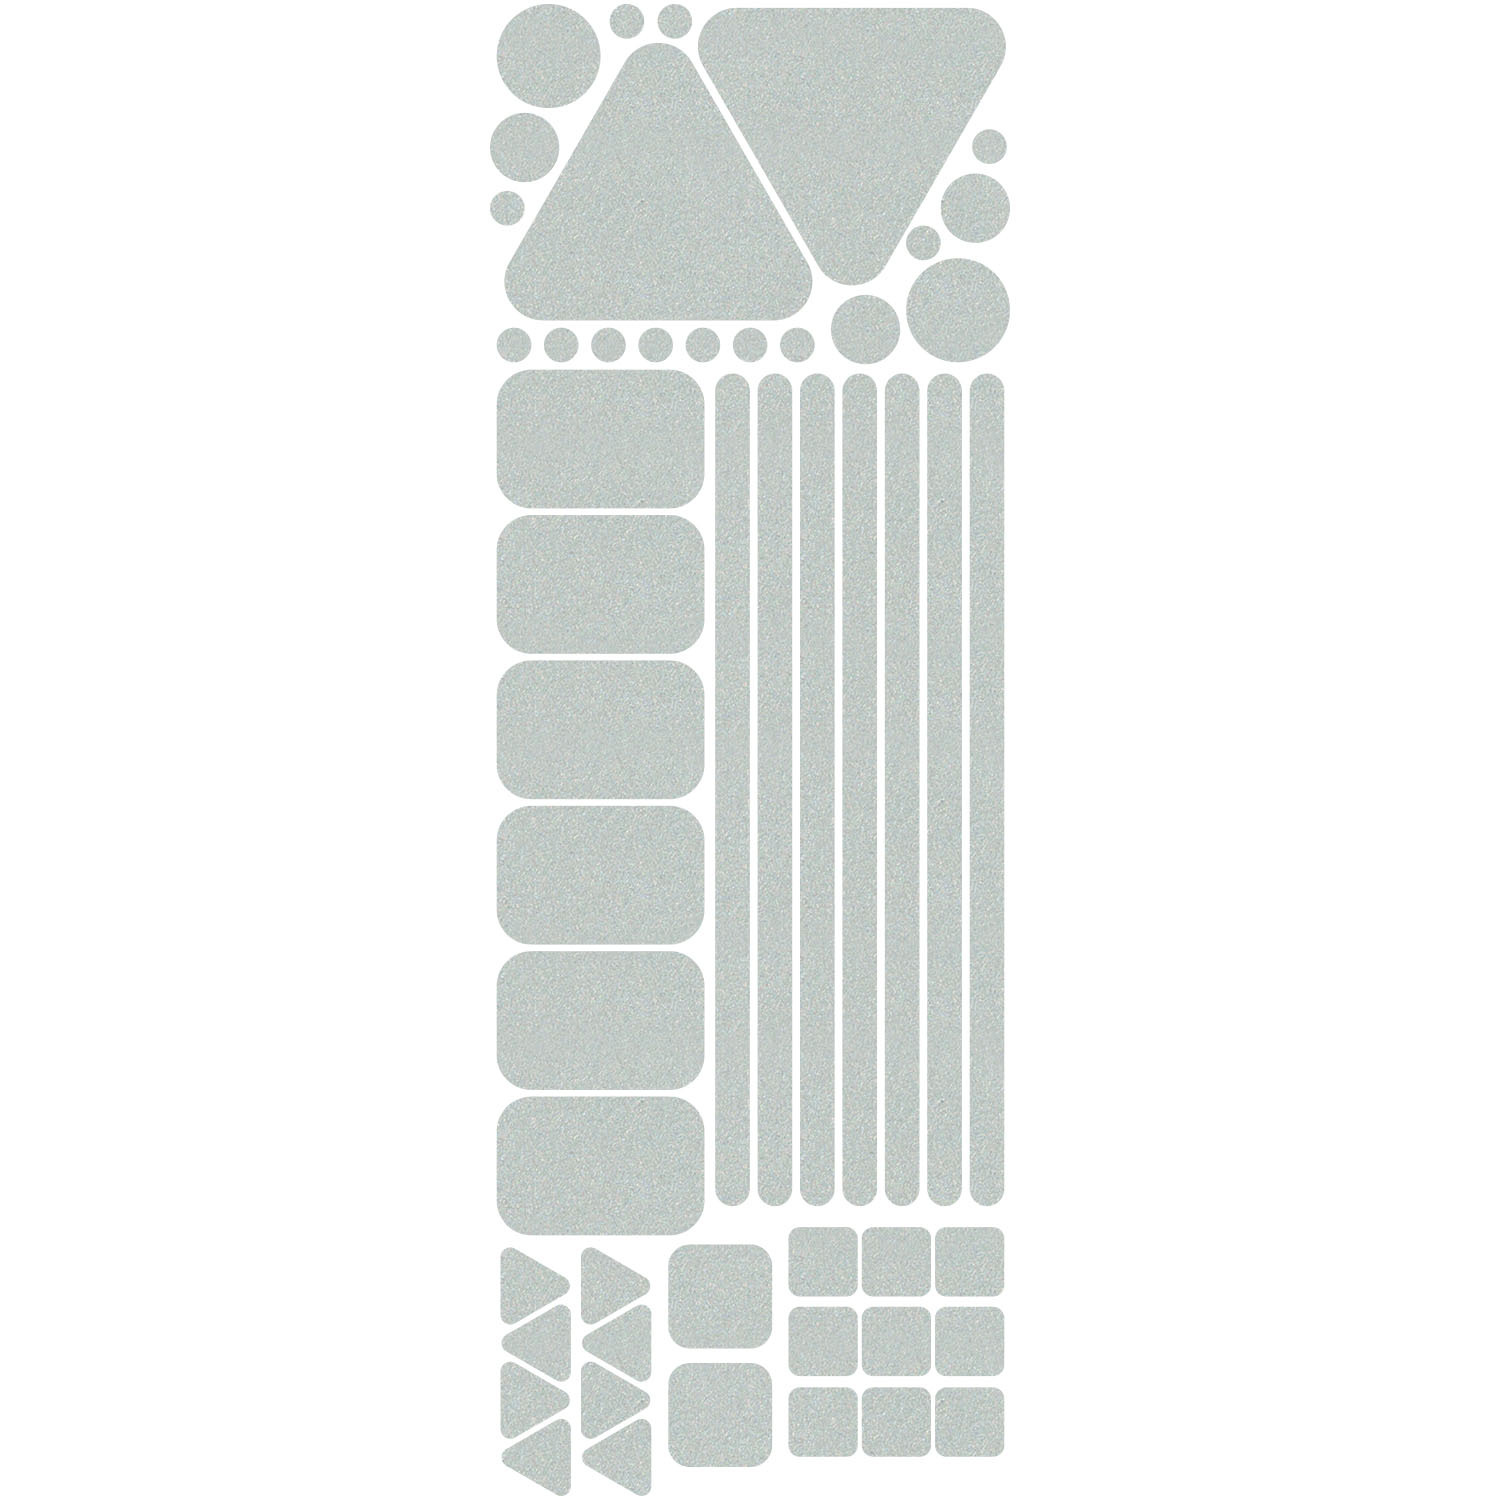 Primary image for LiteMark Reflective White Variety Pack of Decals - Assorted Shapes and Sizes